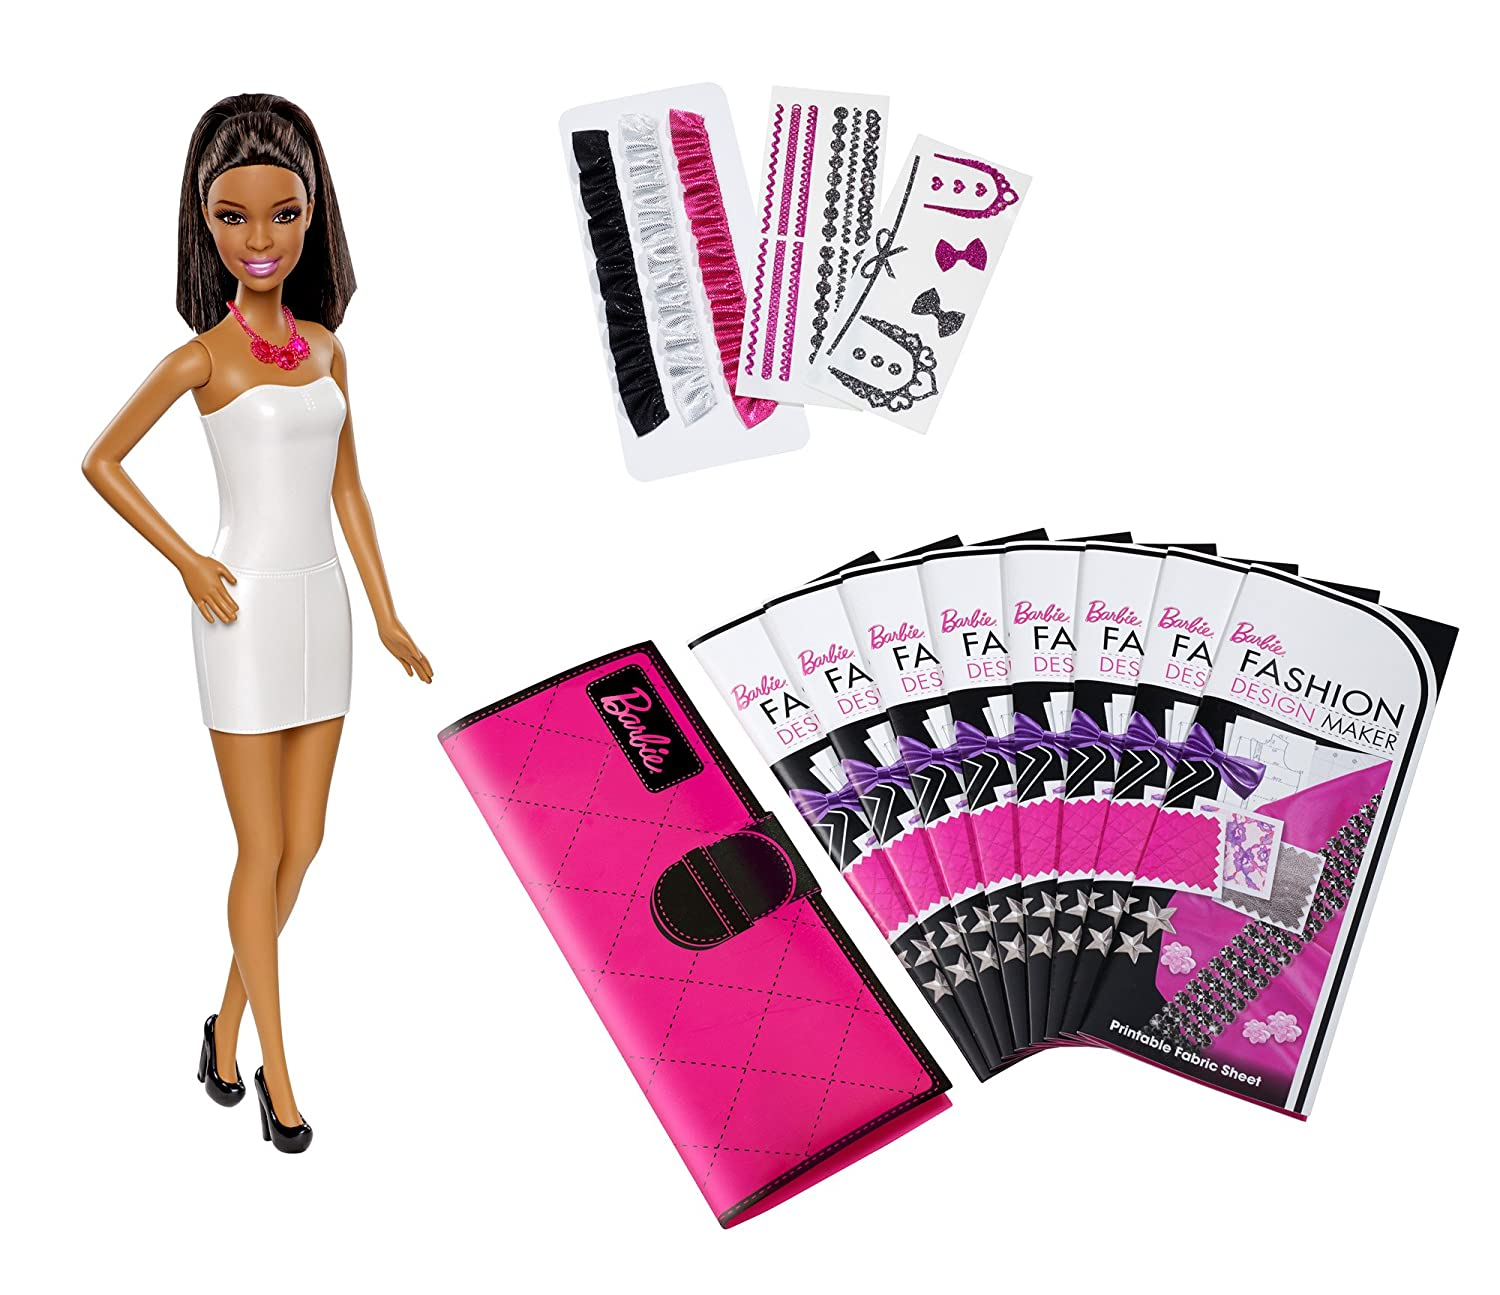 How To Use Barbie Fashion Design Plates Barbie Fashion Design Maker